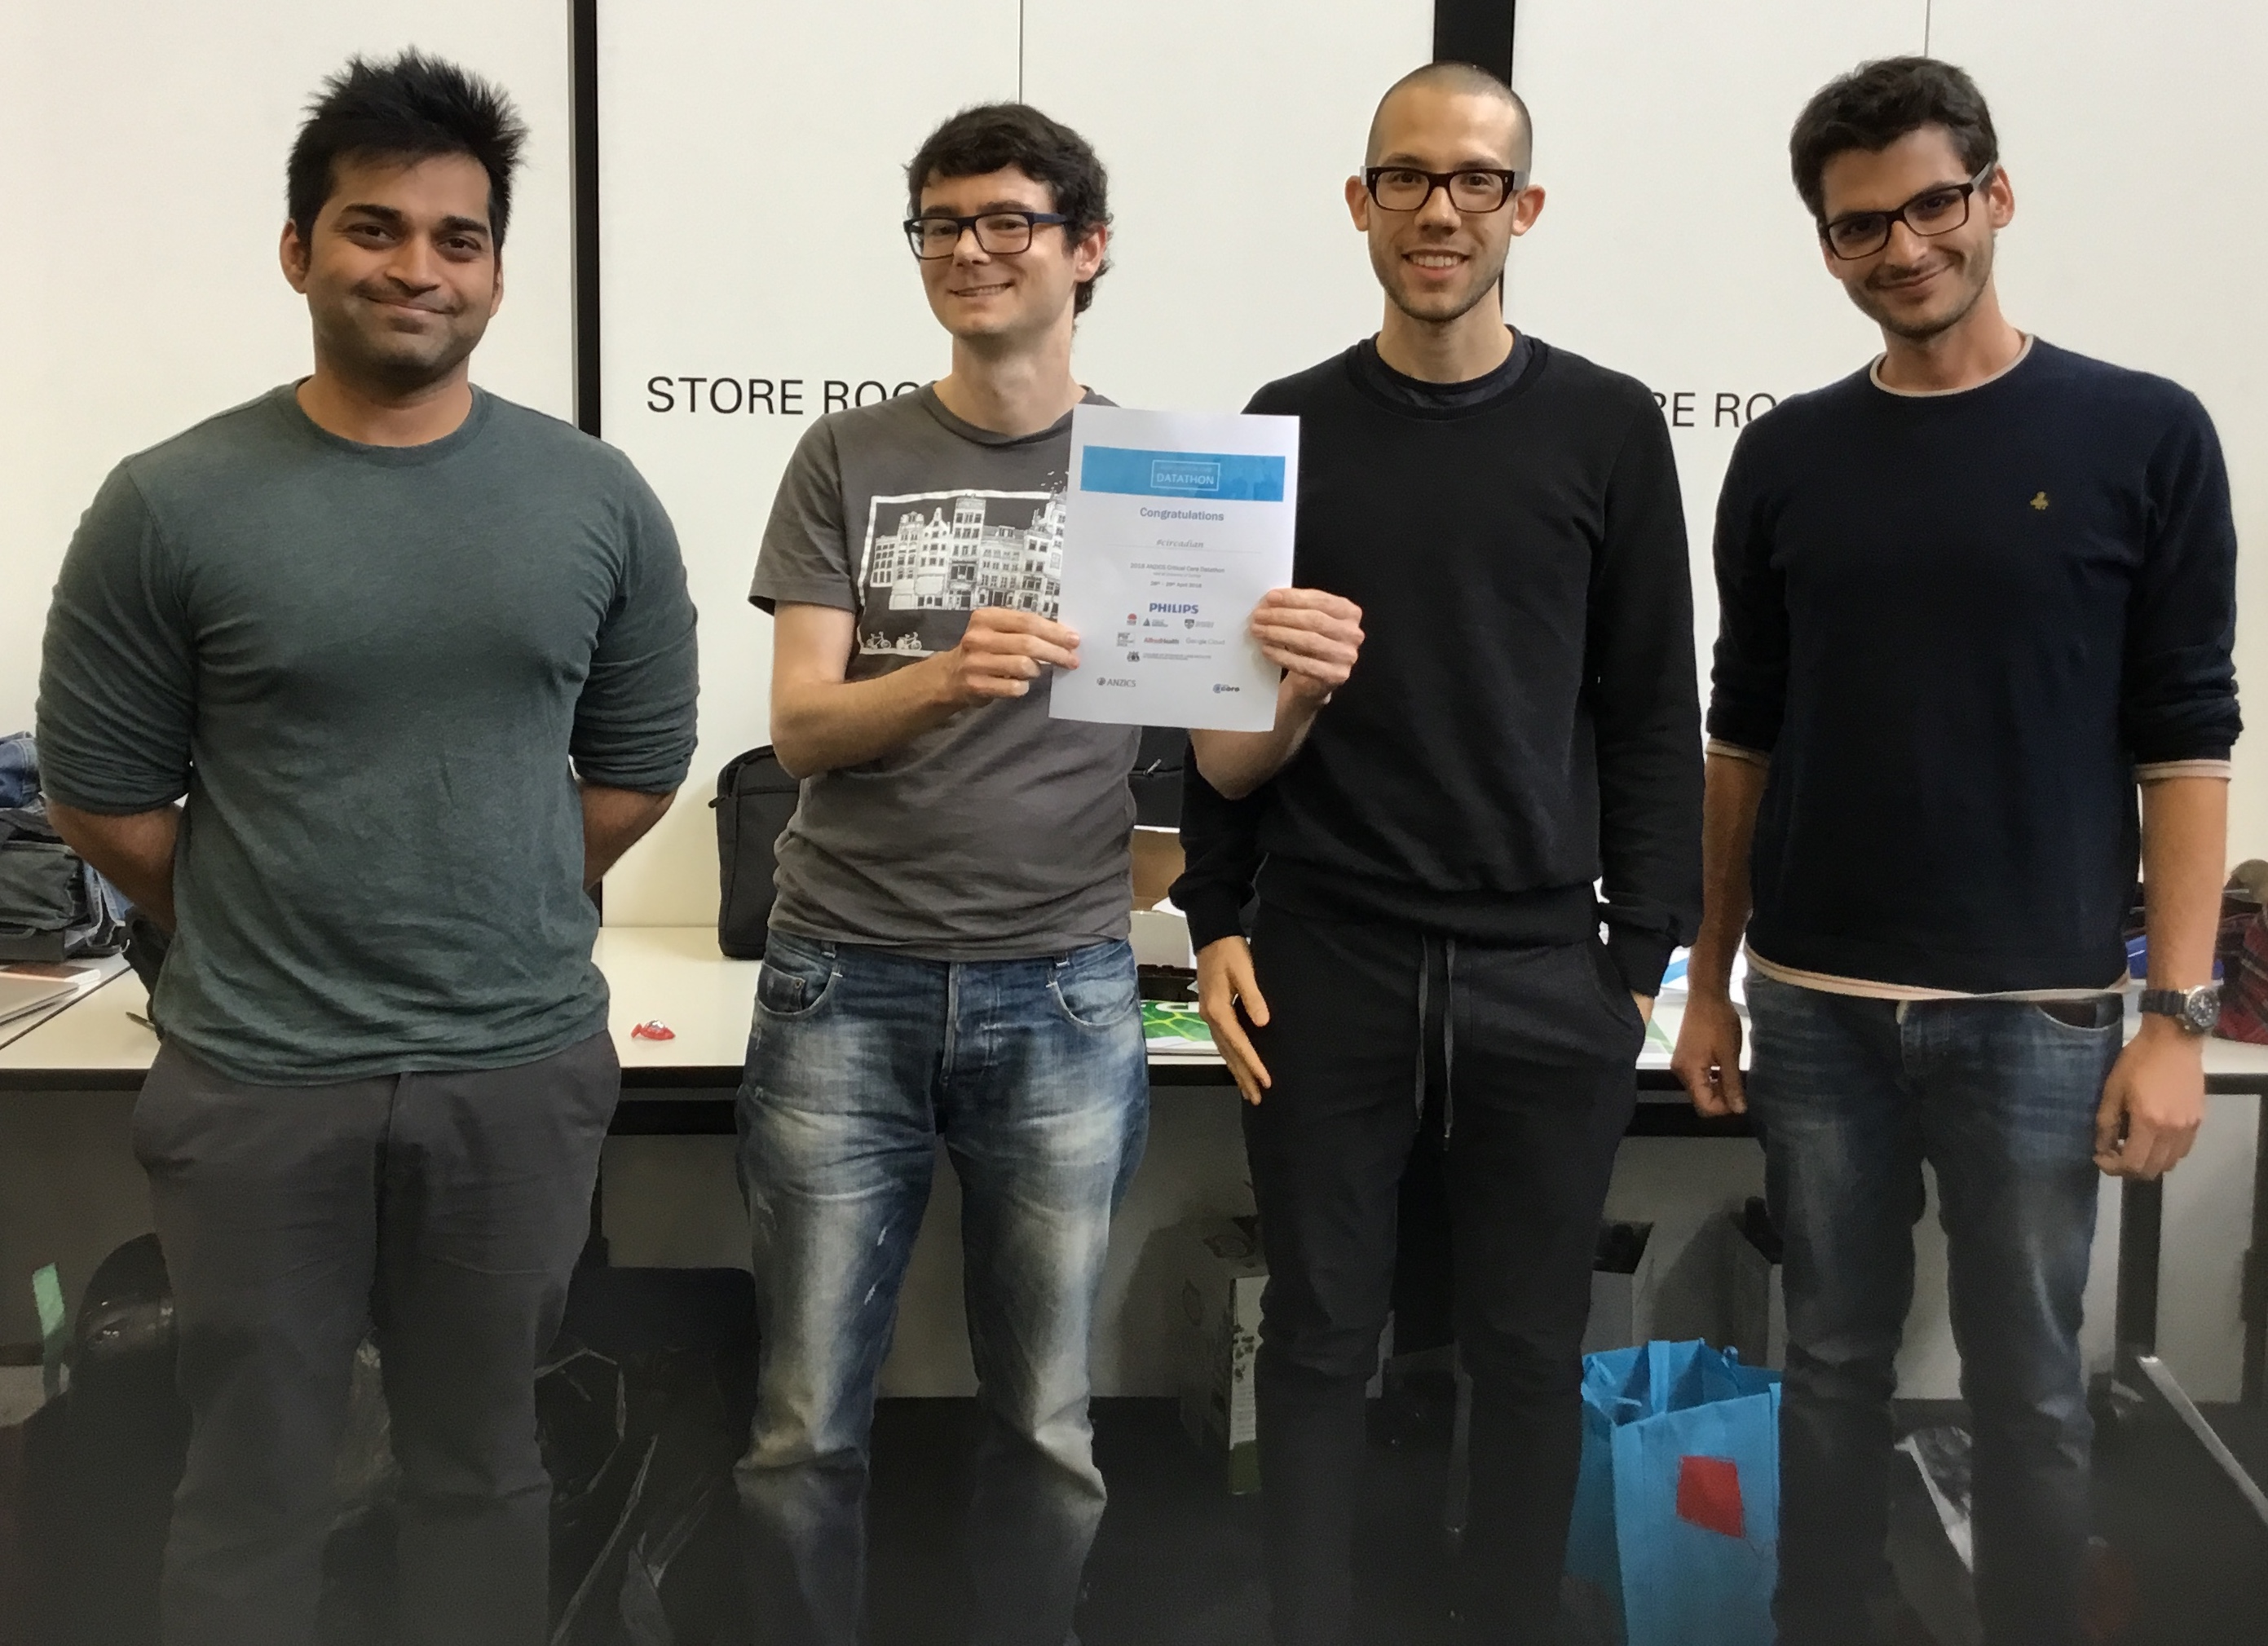 SIH research engineer wins ANZICS Datathon